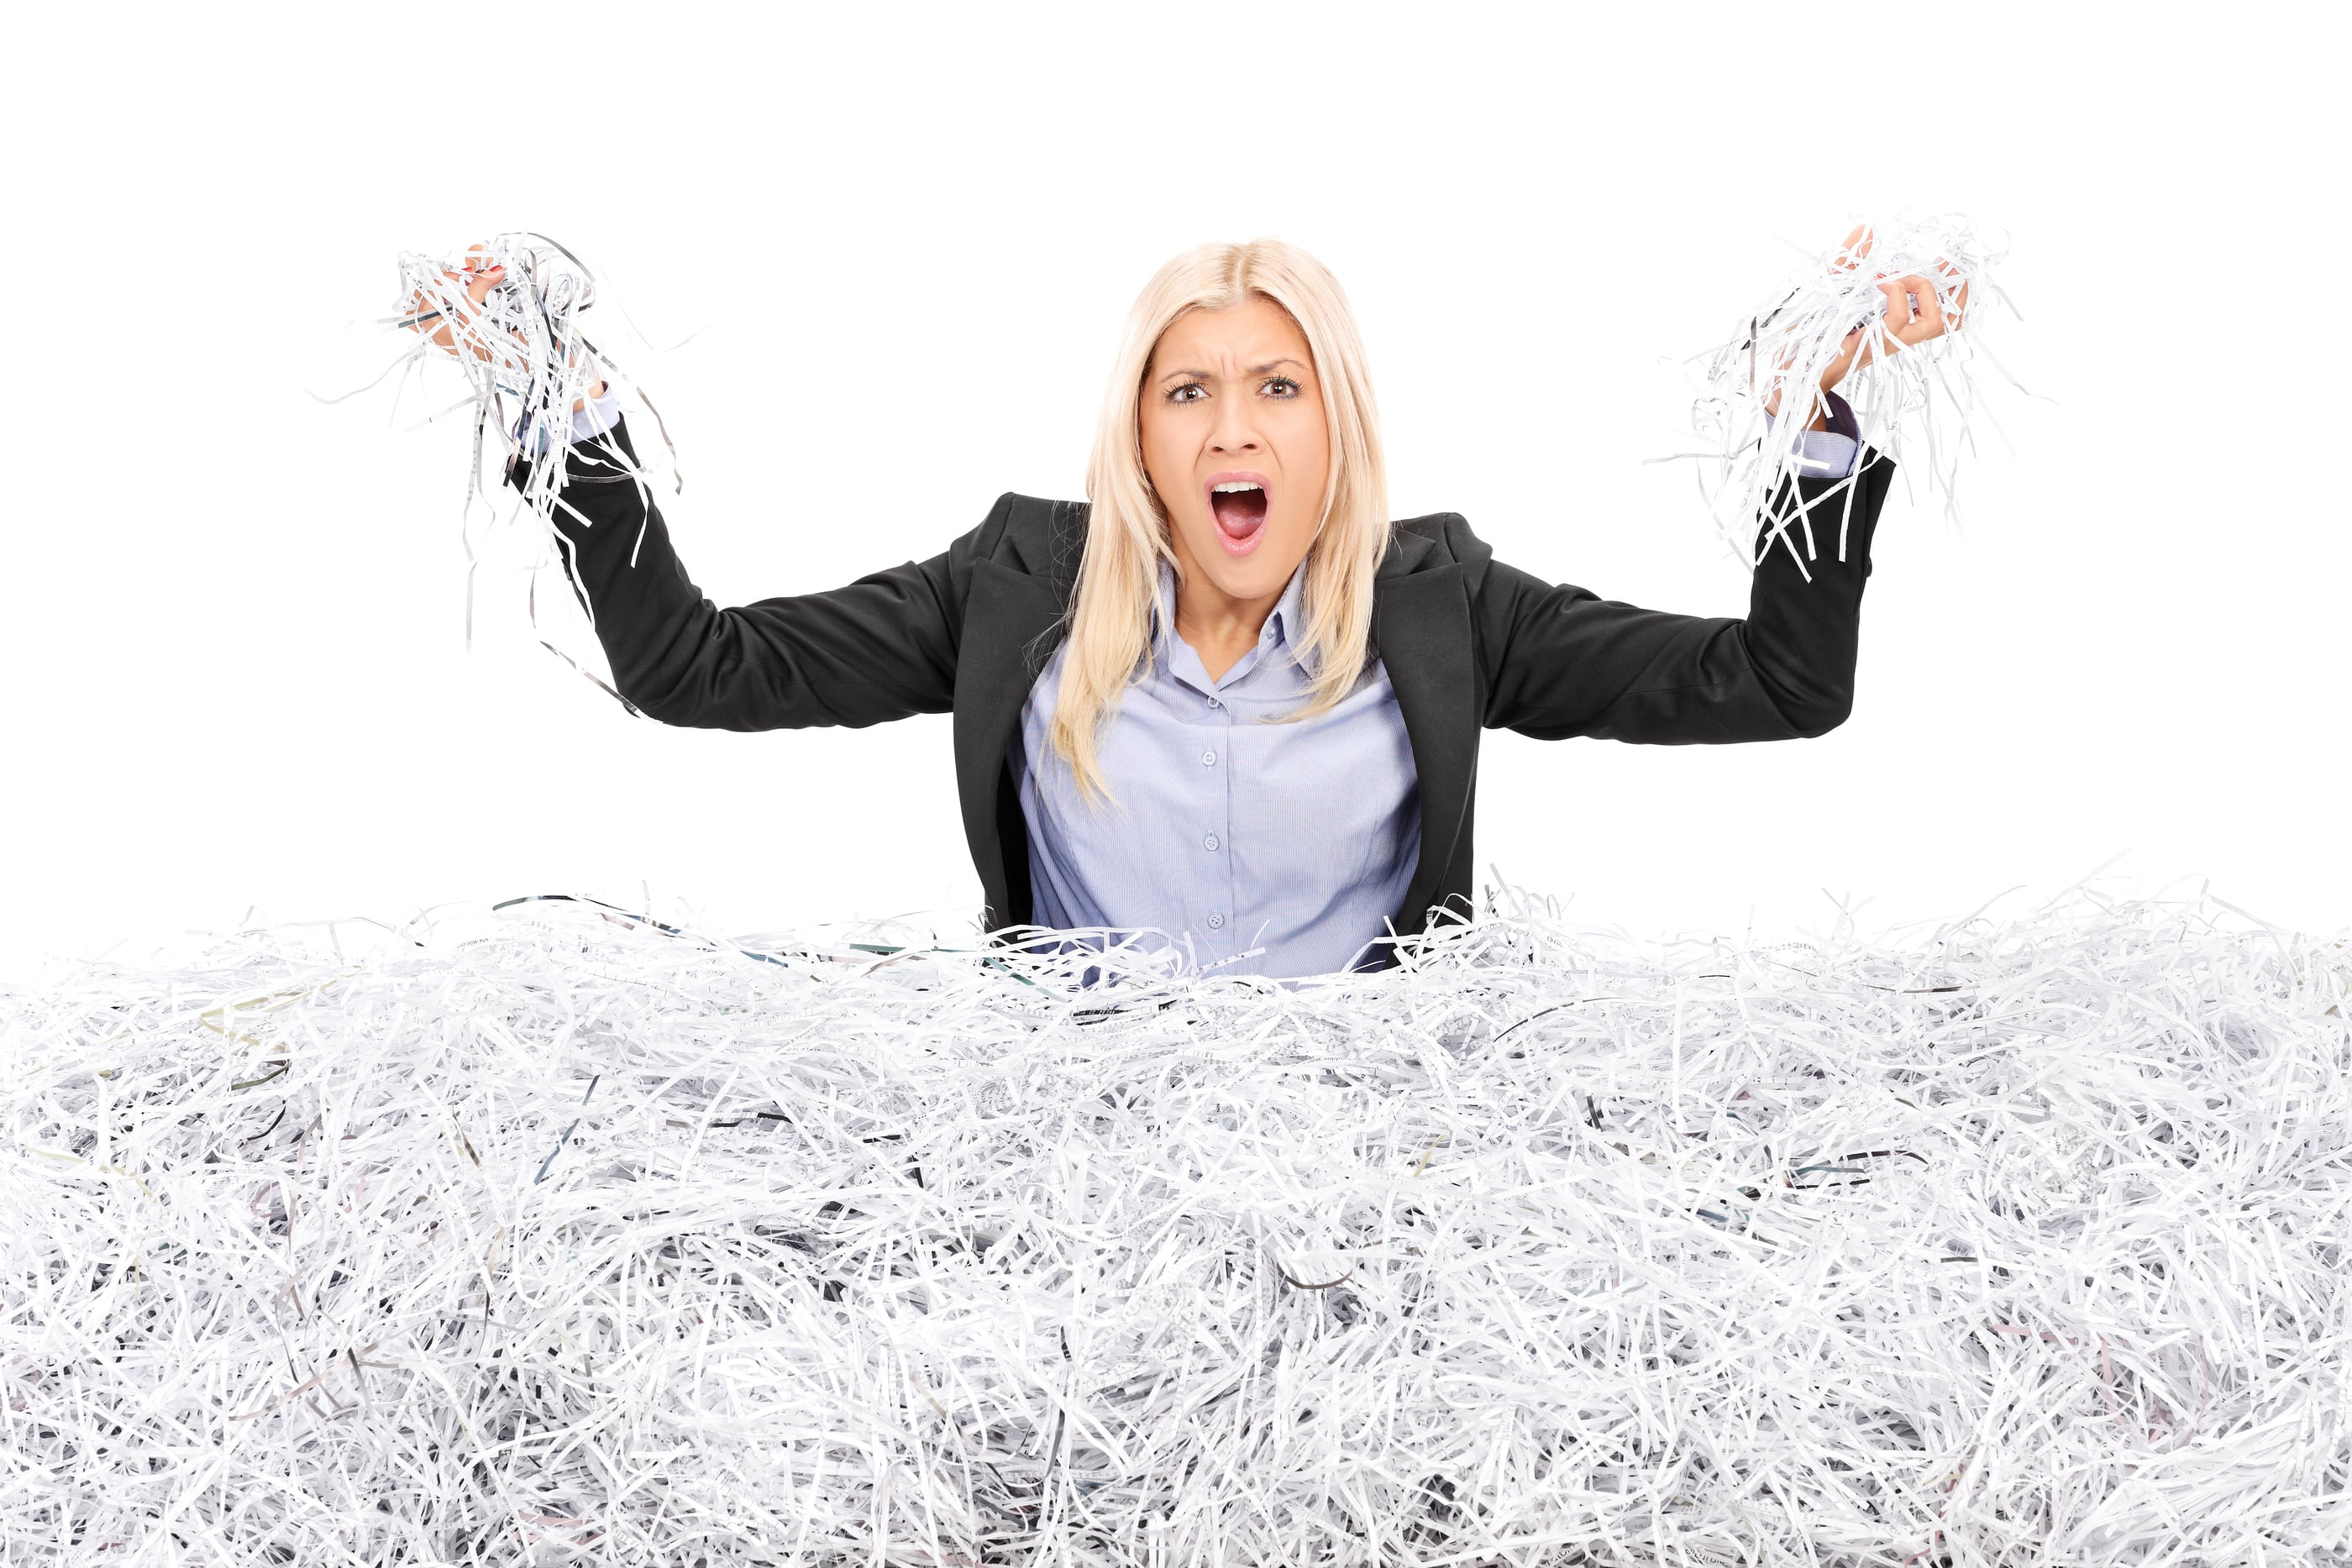 Angry businesswoman in a pile of shredded paper isolated on white background